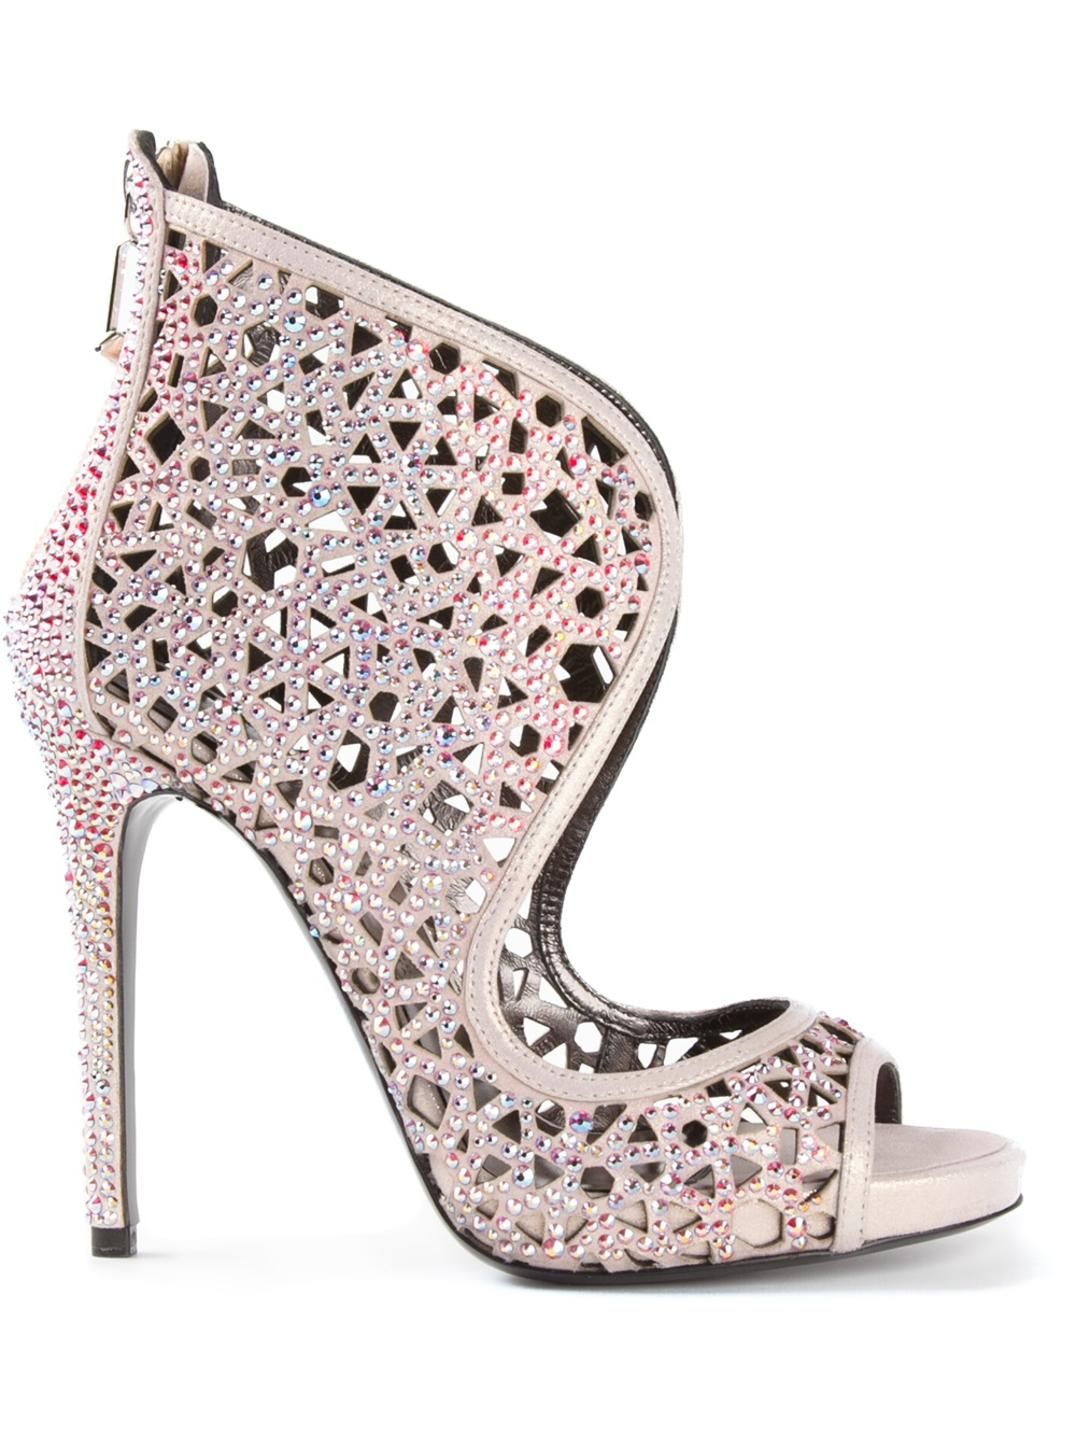 Pink dress shoes for ladies  Pink leather embellished sandals from Philipp Plein featuring an